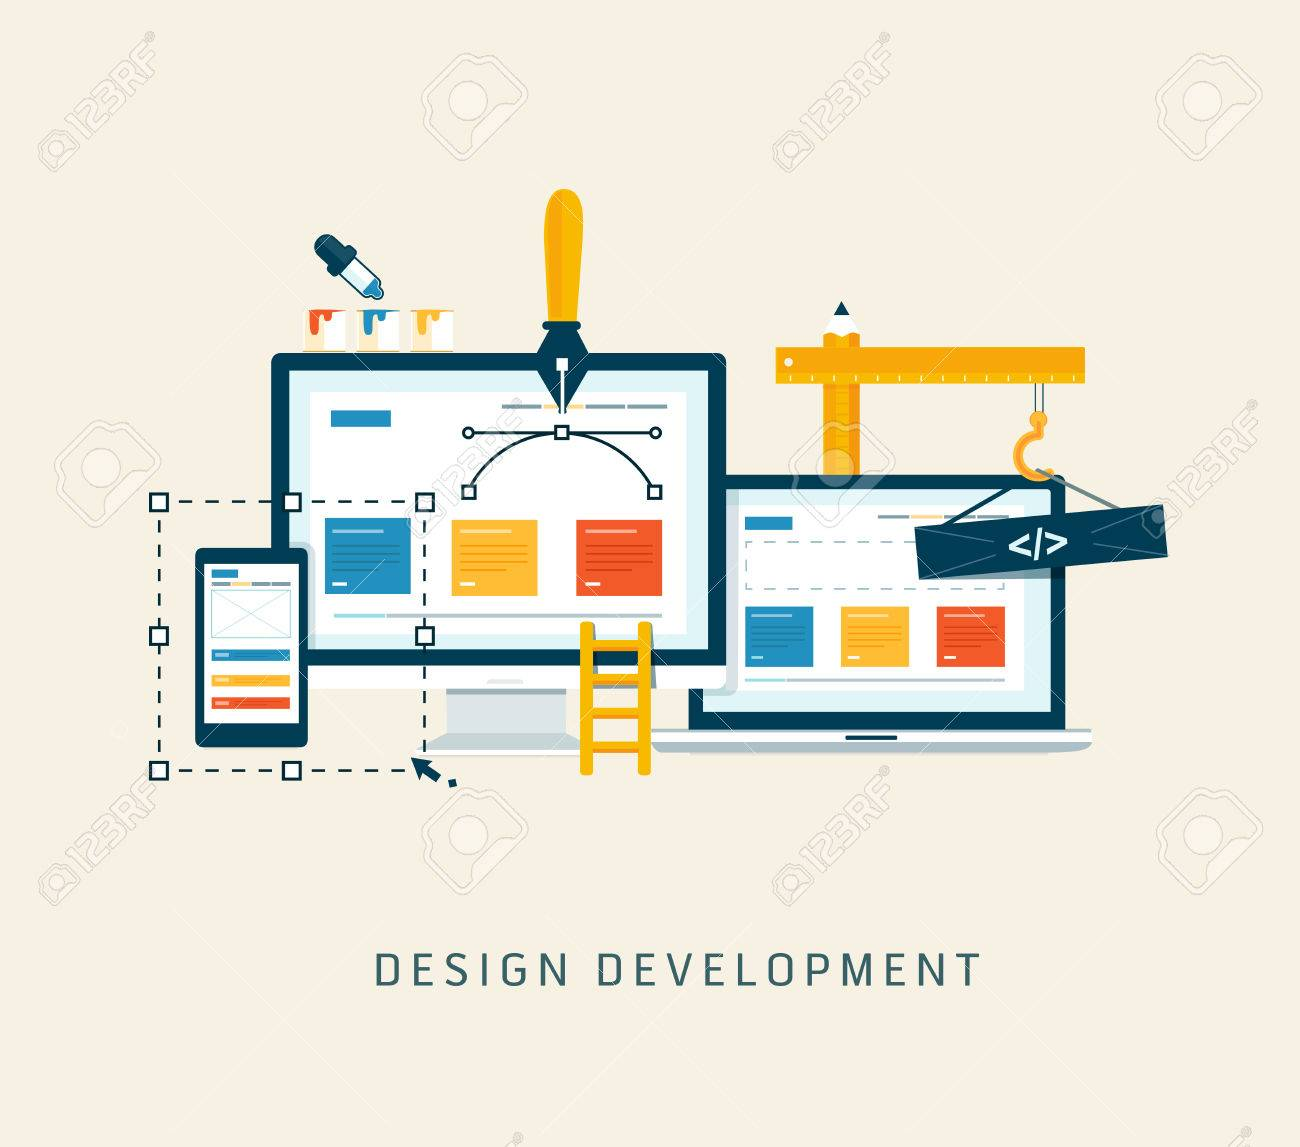 Designing a website or application  Flat style vector design Stock Vector - 26080209